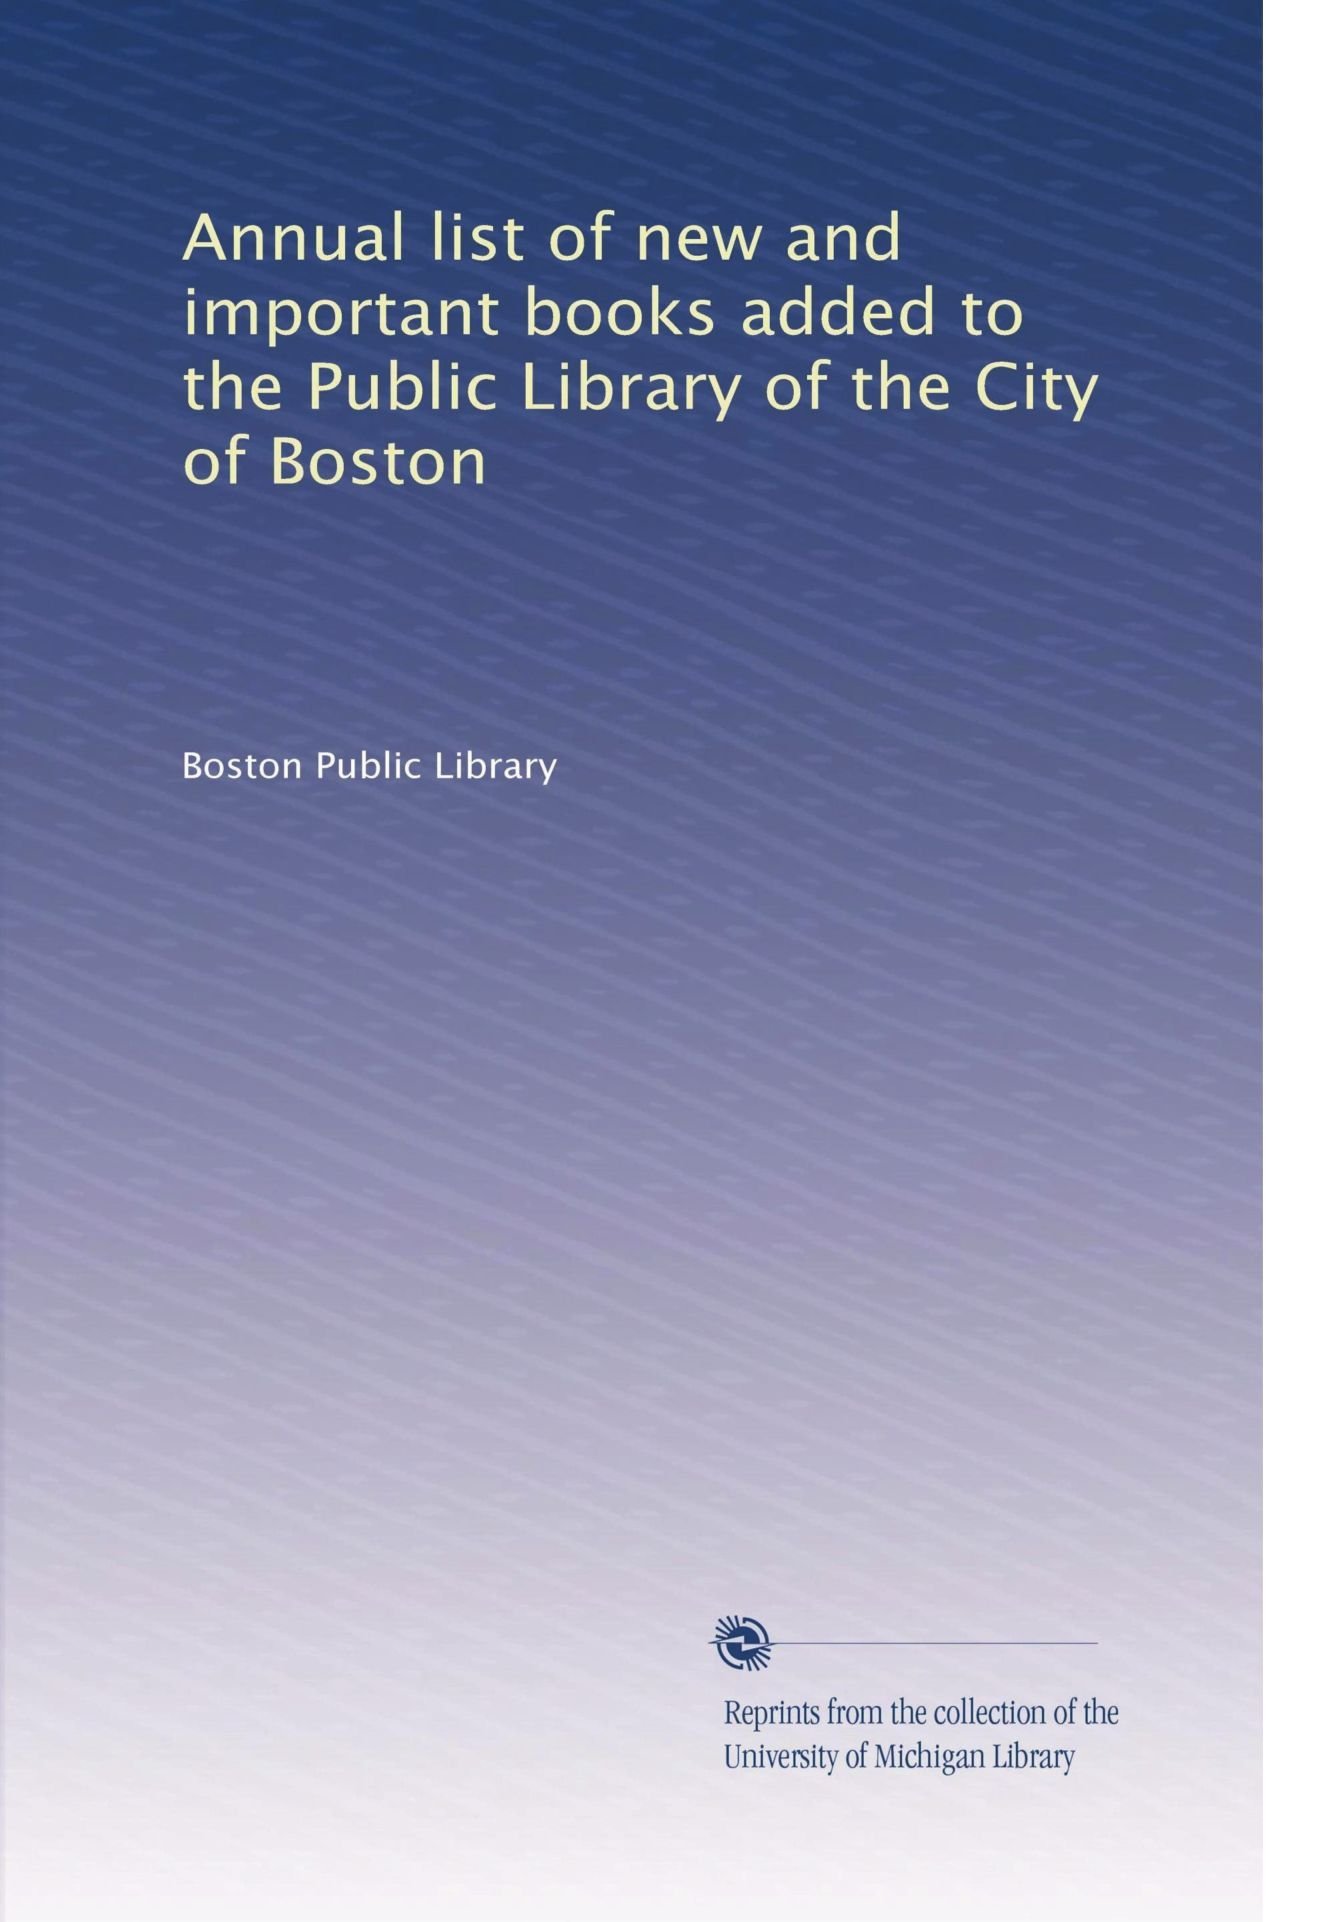 Download Annual list of new and important books added to the Public Library of the City of Boston (Volume 3) PDF